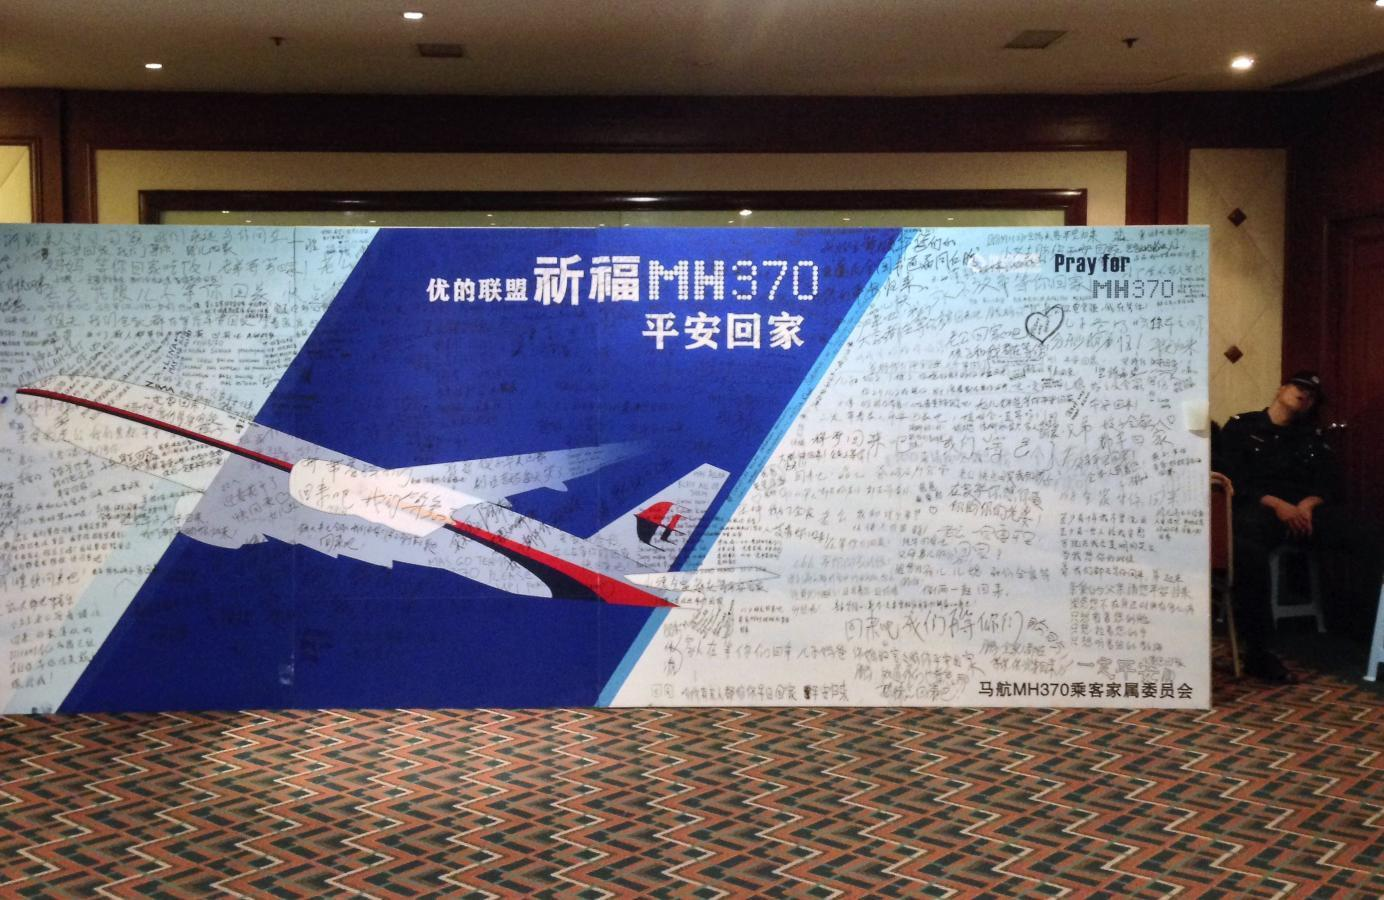 Red herring in hunt for MH370 highlights air traffic flaws - Reuters